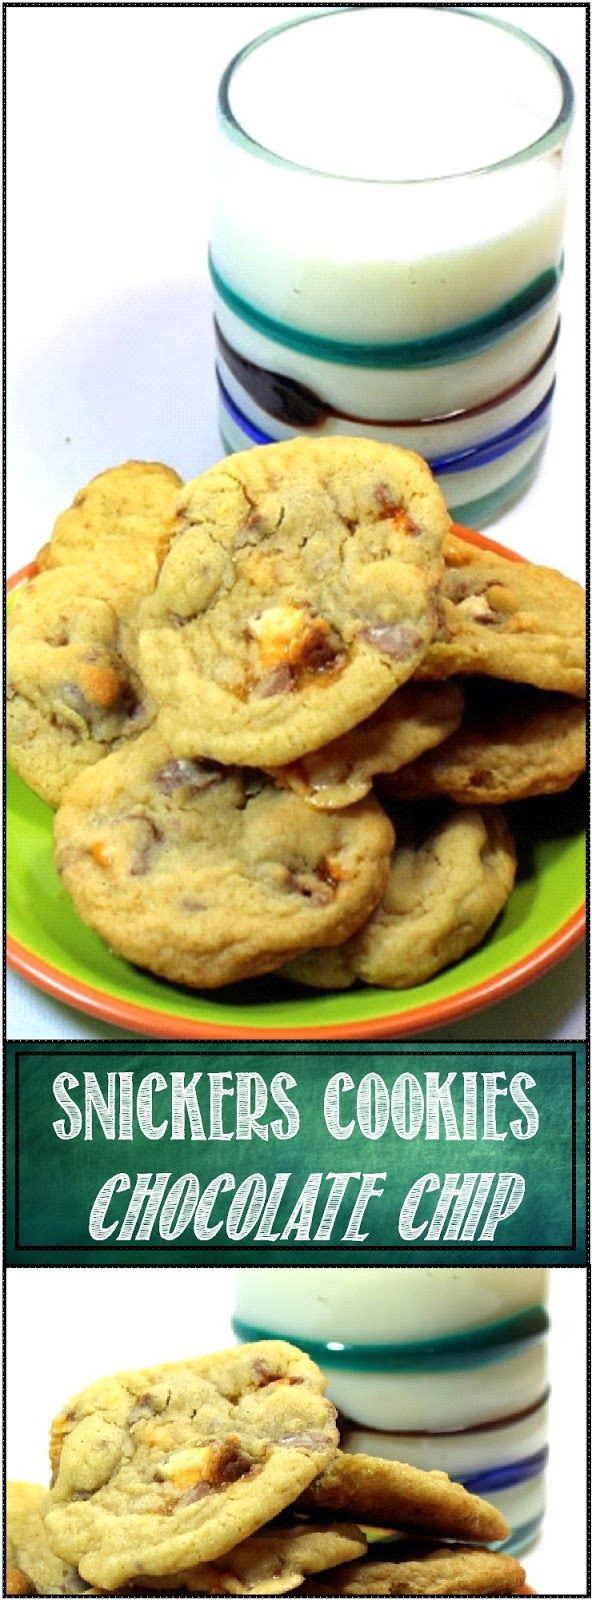 nickers Cookies (BEST Chocolate Chip Cookie EVER That Doesn't have Chocolate Chips) A Standard Chocolate Chip Cookie Recipe with a couple of SECRETS but also instead of Chocolate chips I dice up some Halloween Candy... Snickers Bars have Nugget, Nuts, Caramel and Chocolate... Makes these cookies BETTER than just chips... THE BEST EVER!!!